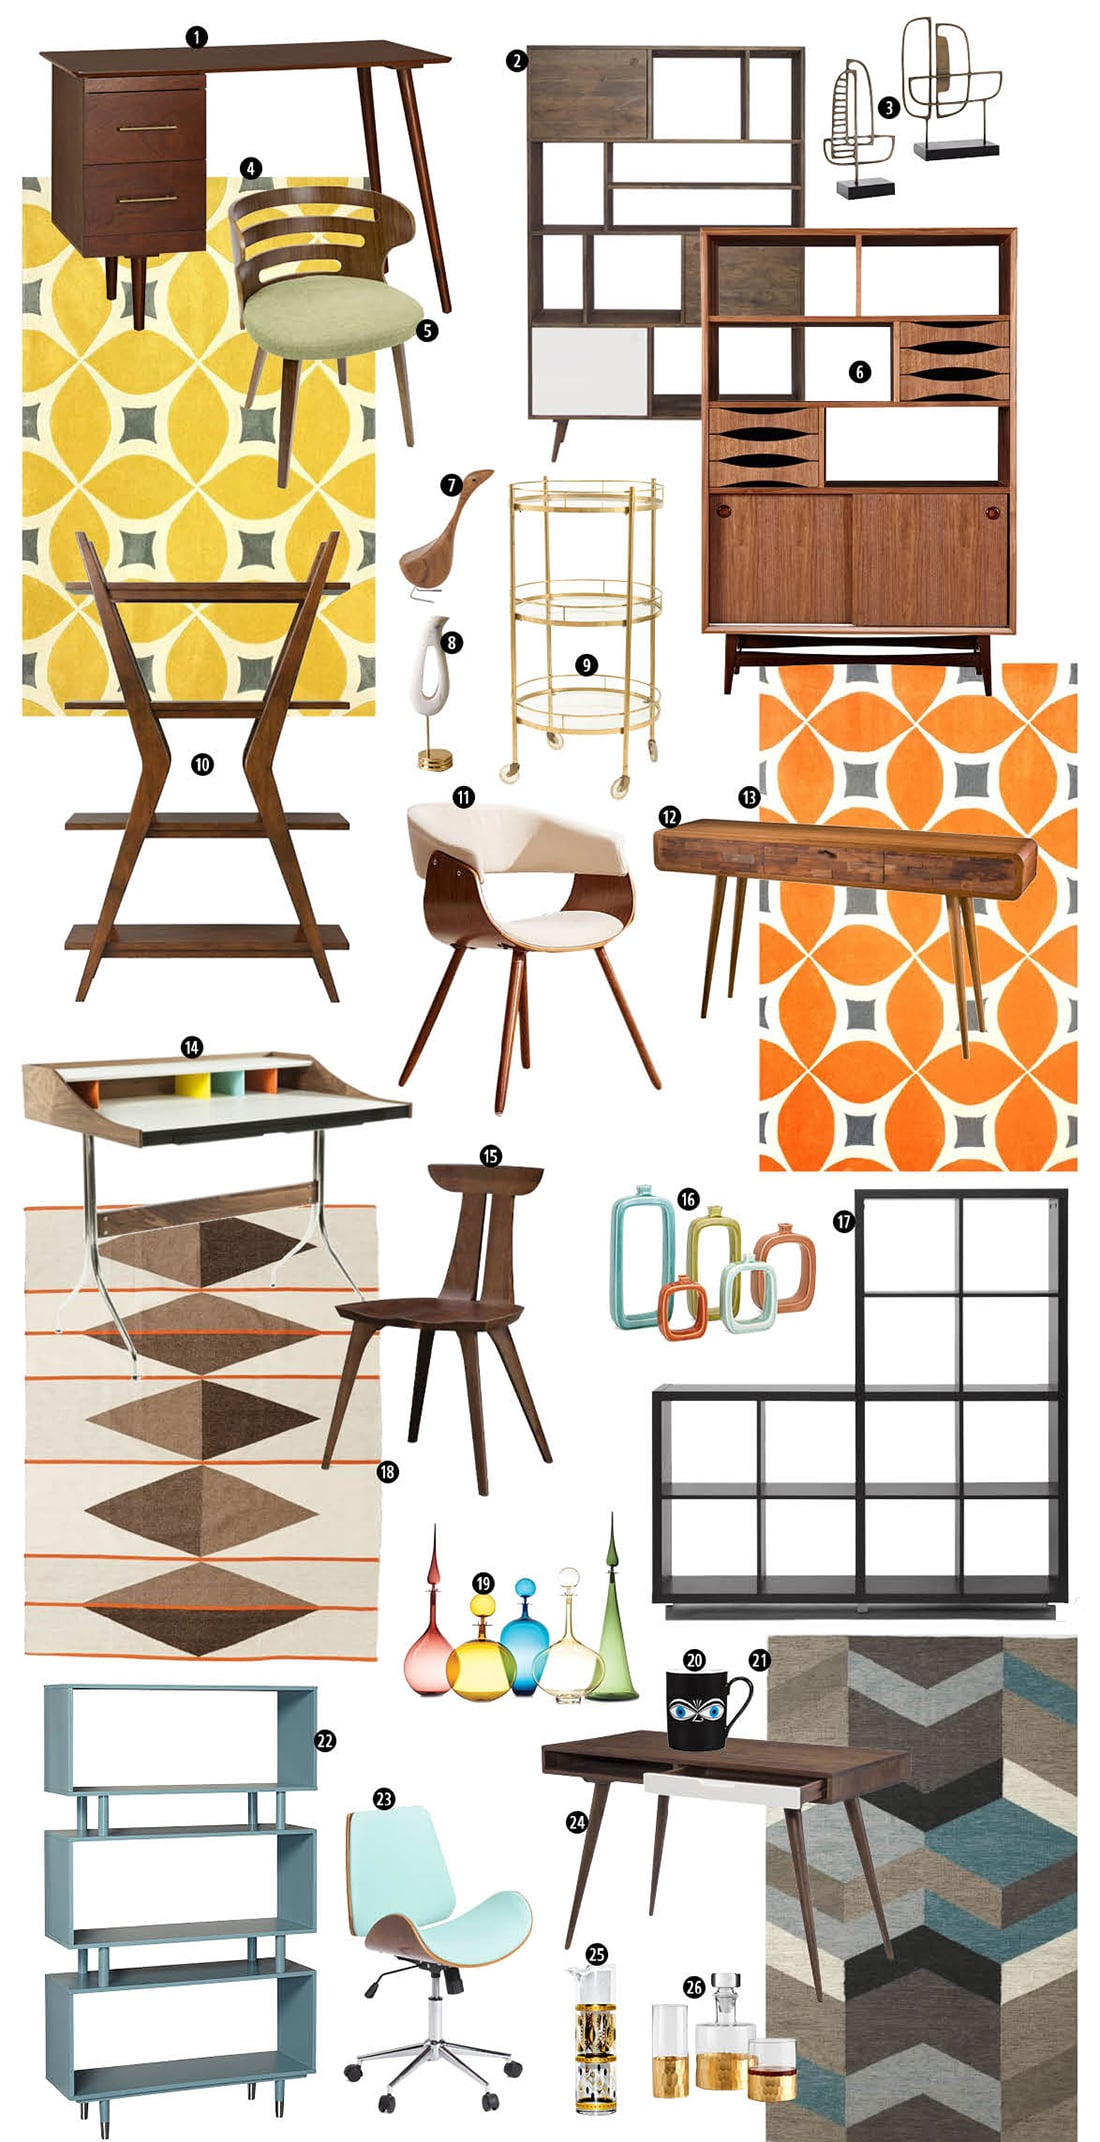 8 Signs Mid-Century Modern Decor is the Right Home Style for You • Little Gold Pixel • Click through to find out if you're compatible with Mid-Century Modern decor!